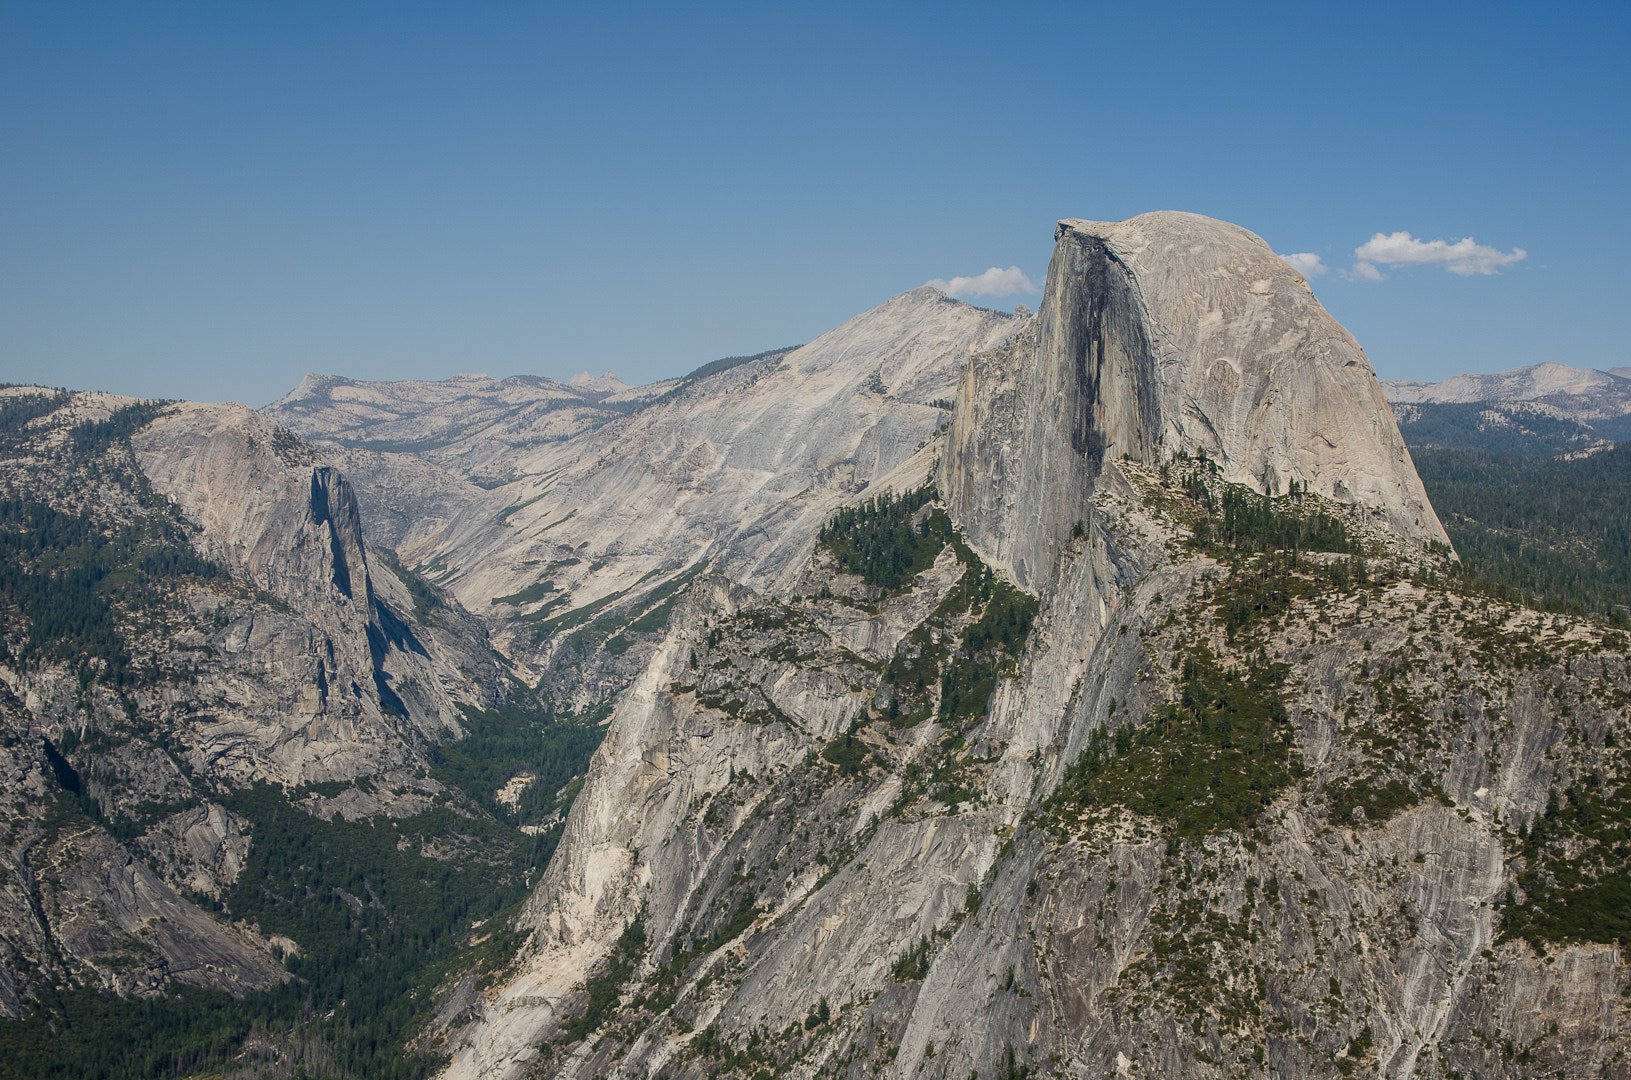 Photograph Glacier Point (Yosemite) by Maarten Kluitman on 500px